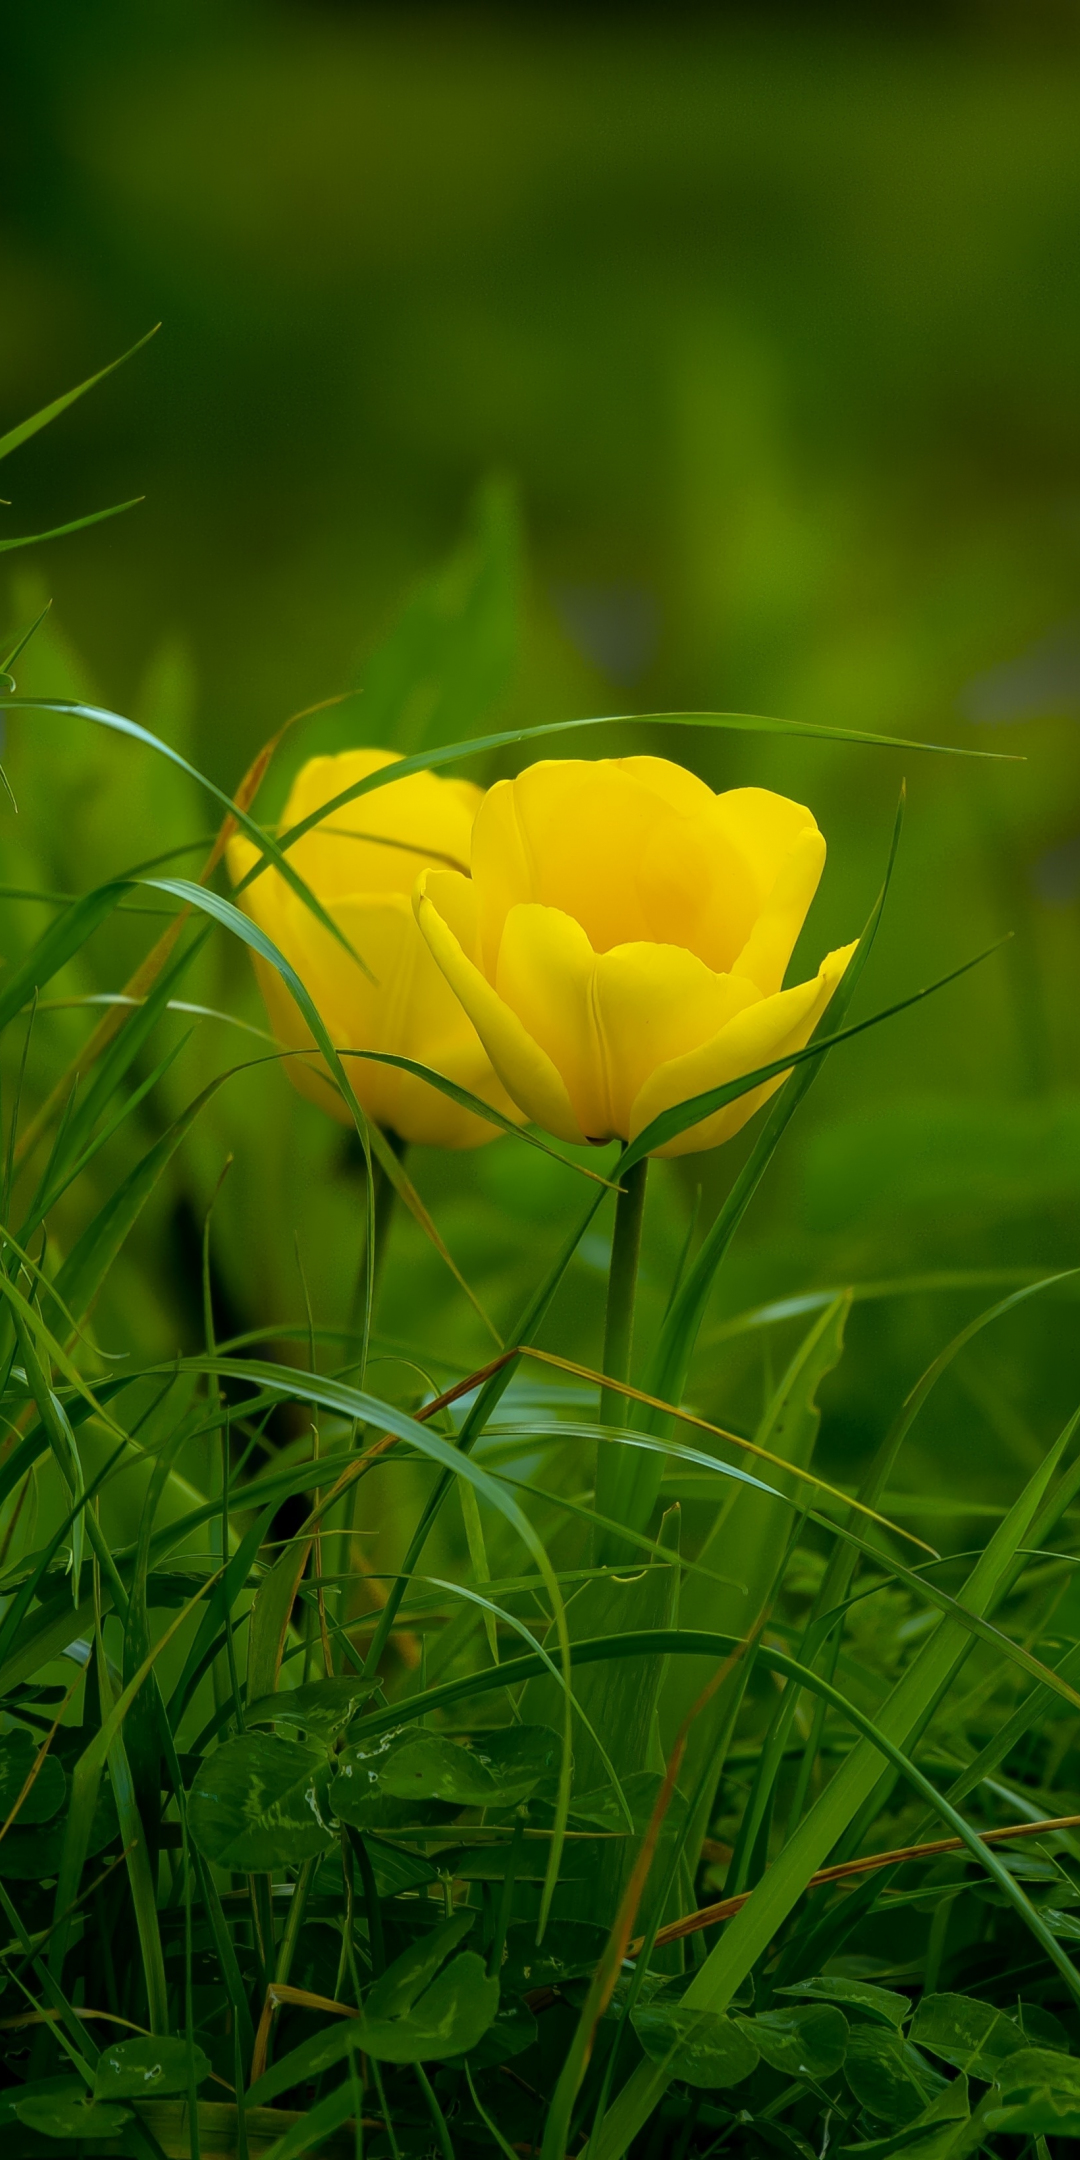 Cute Wallpaper For S5 Download 1080x2160 Wallpaper Grass Yellow Tulips Bloom